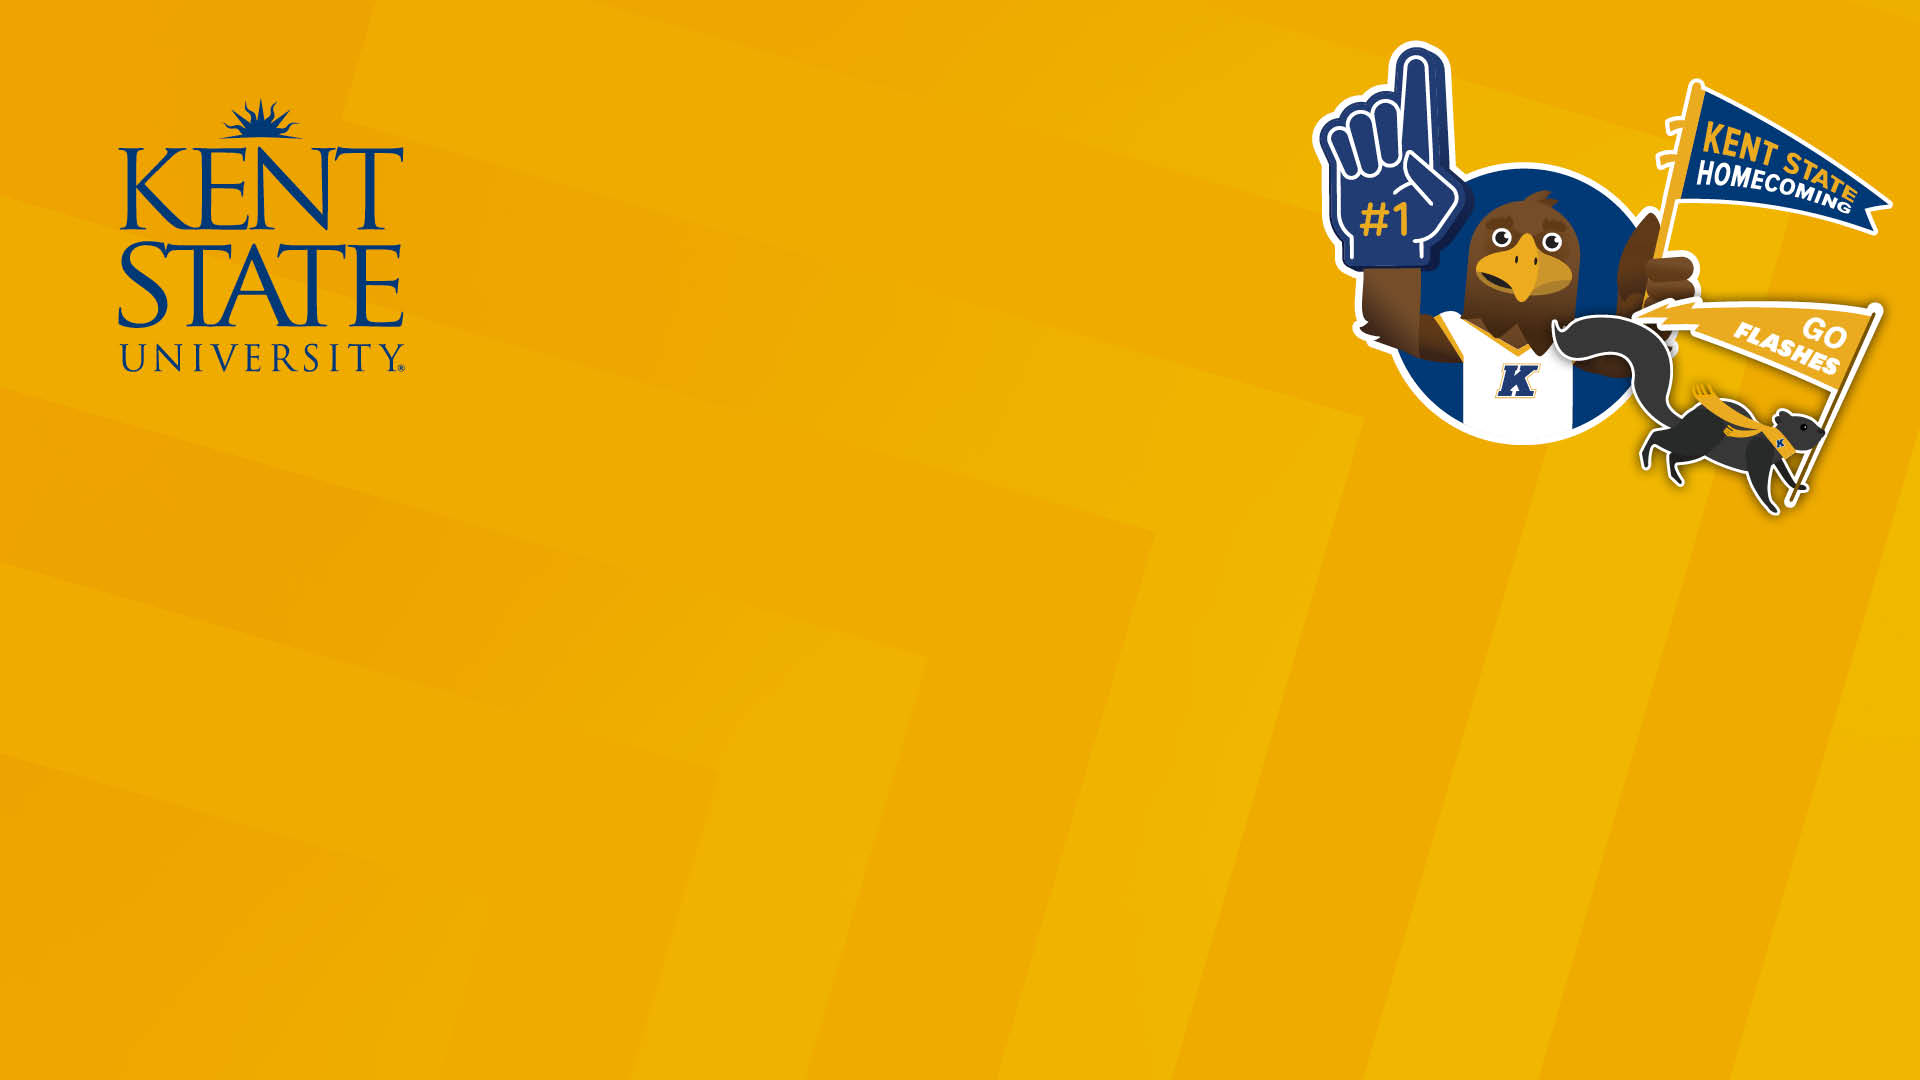 Kent State Homecoming background for Google Meet, Zoom and Microsoft Teams. Yellow Background with Kent State Logo, with Flash holding a banner for homecoming and a black squirrel holding a flag that says Go Flashes!